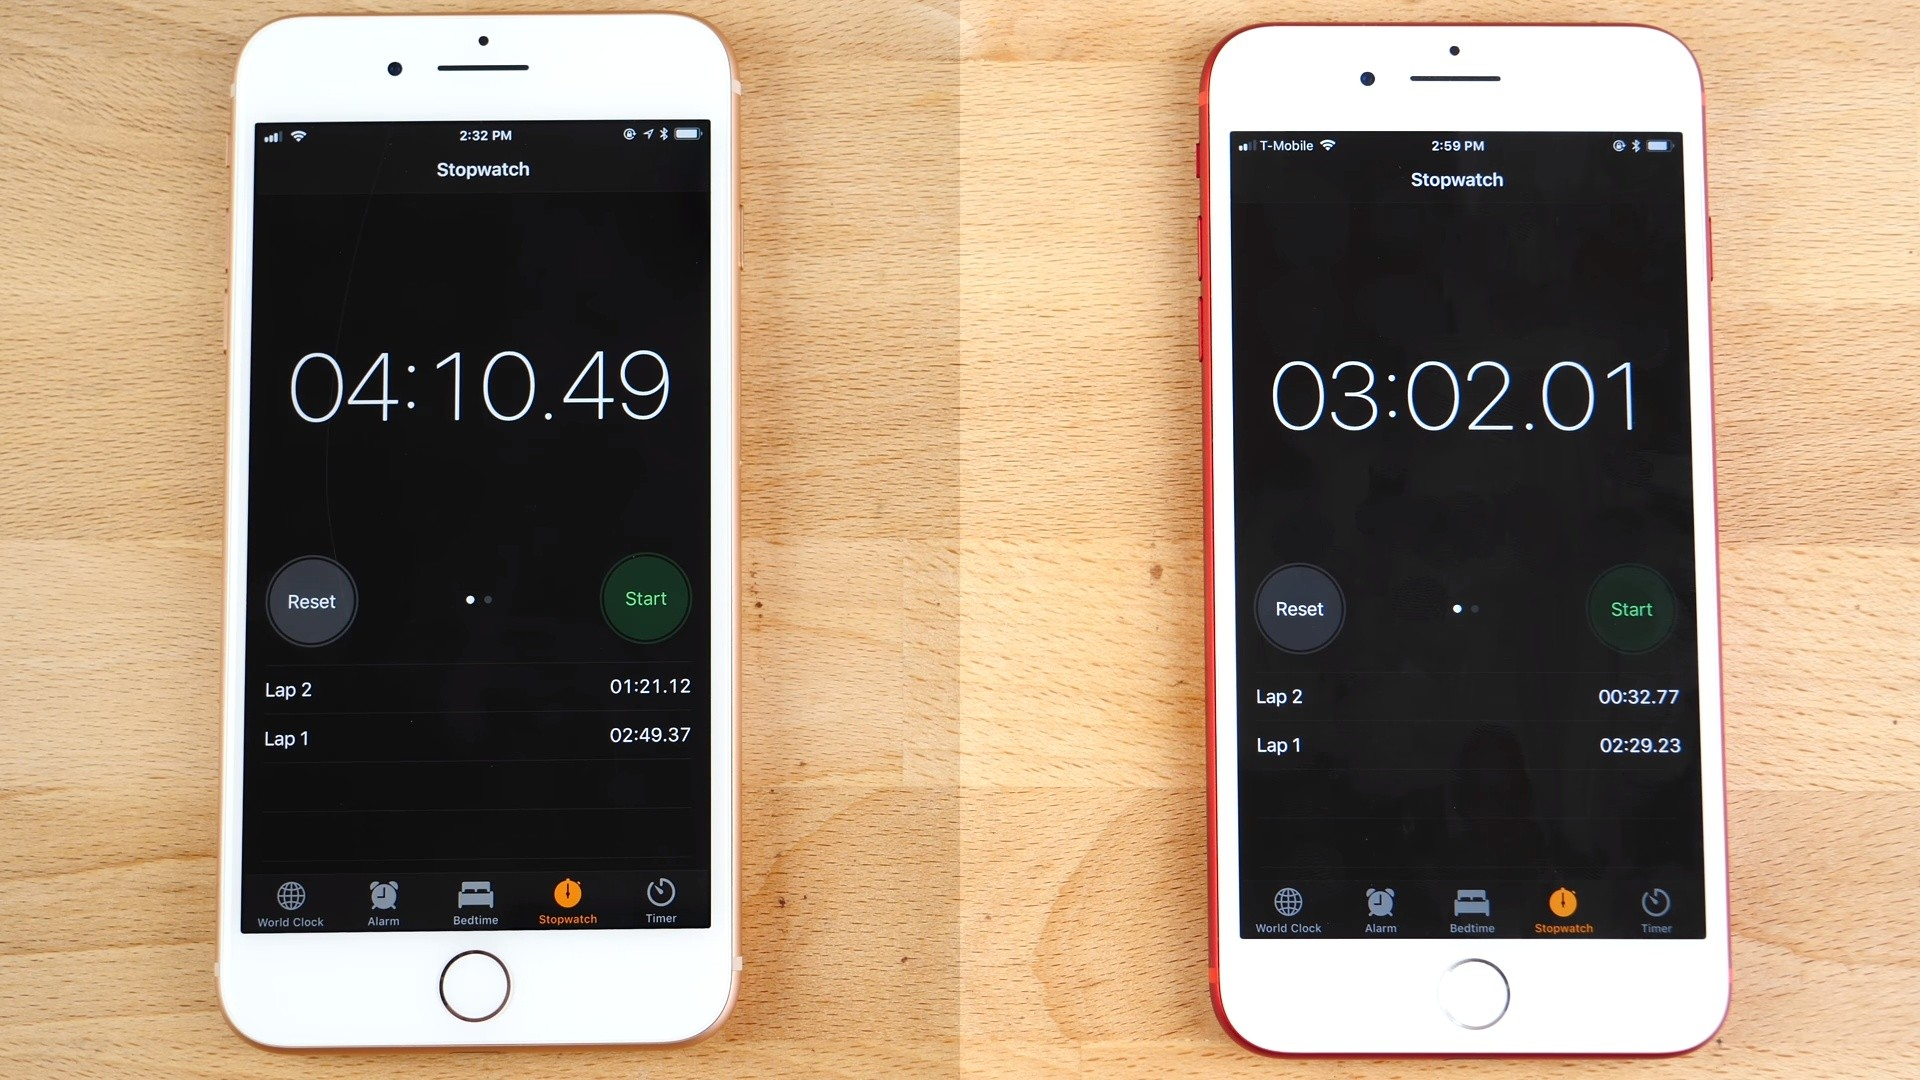 Iphone 8 Plus Is Much Slower Than Iphone 7 Plus In Real World Test